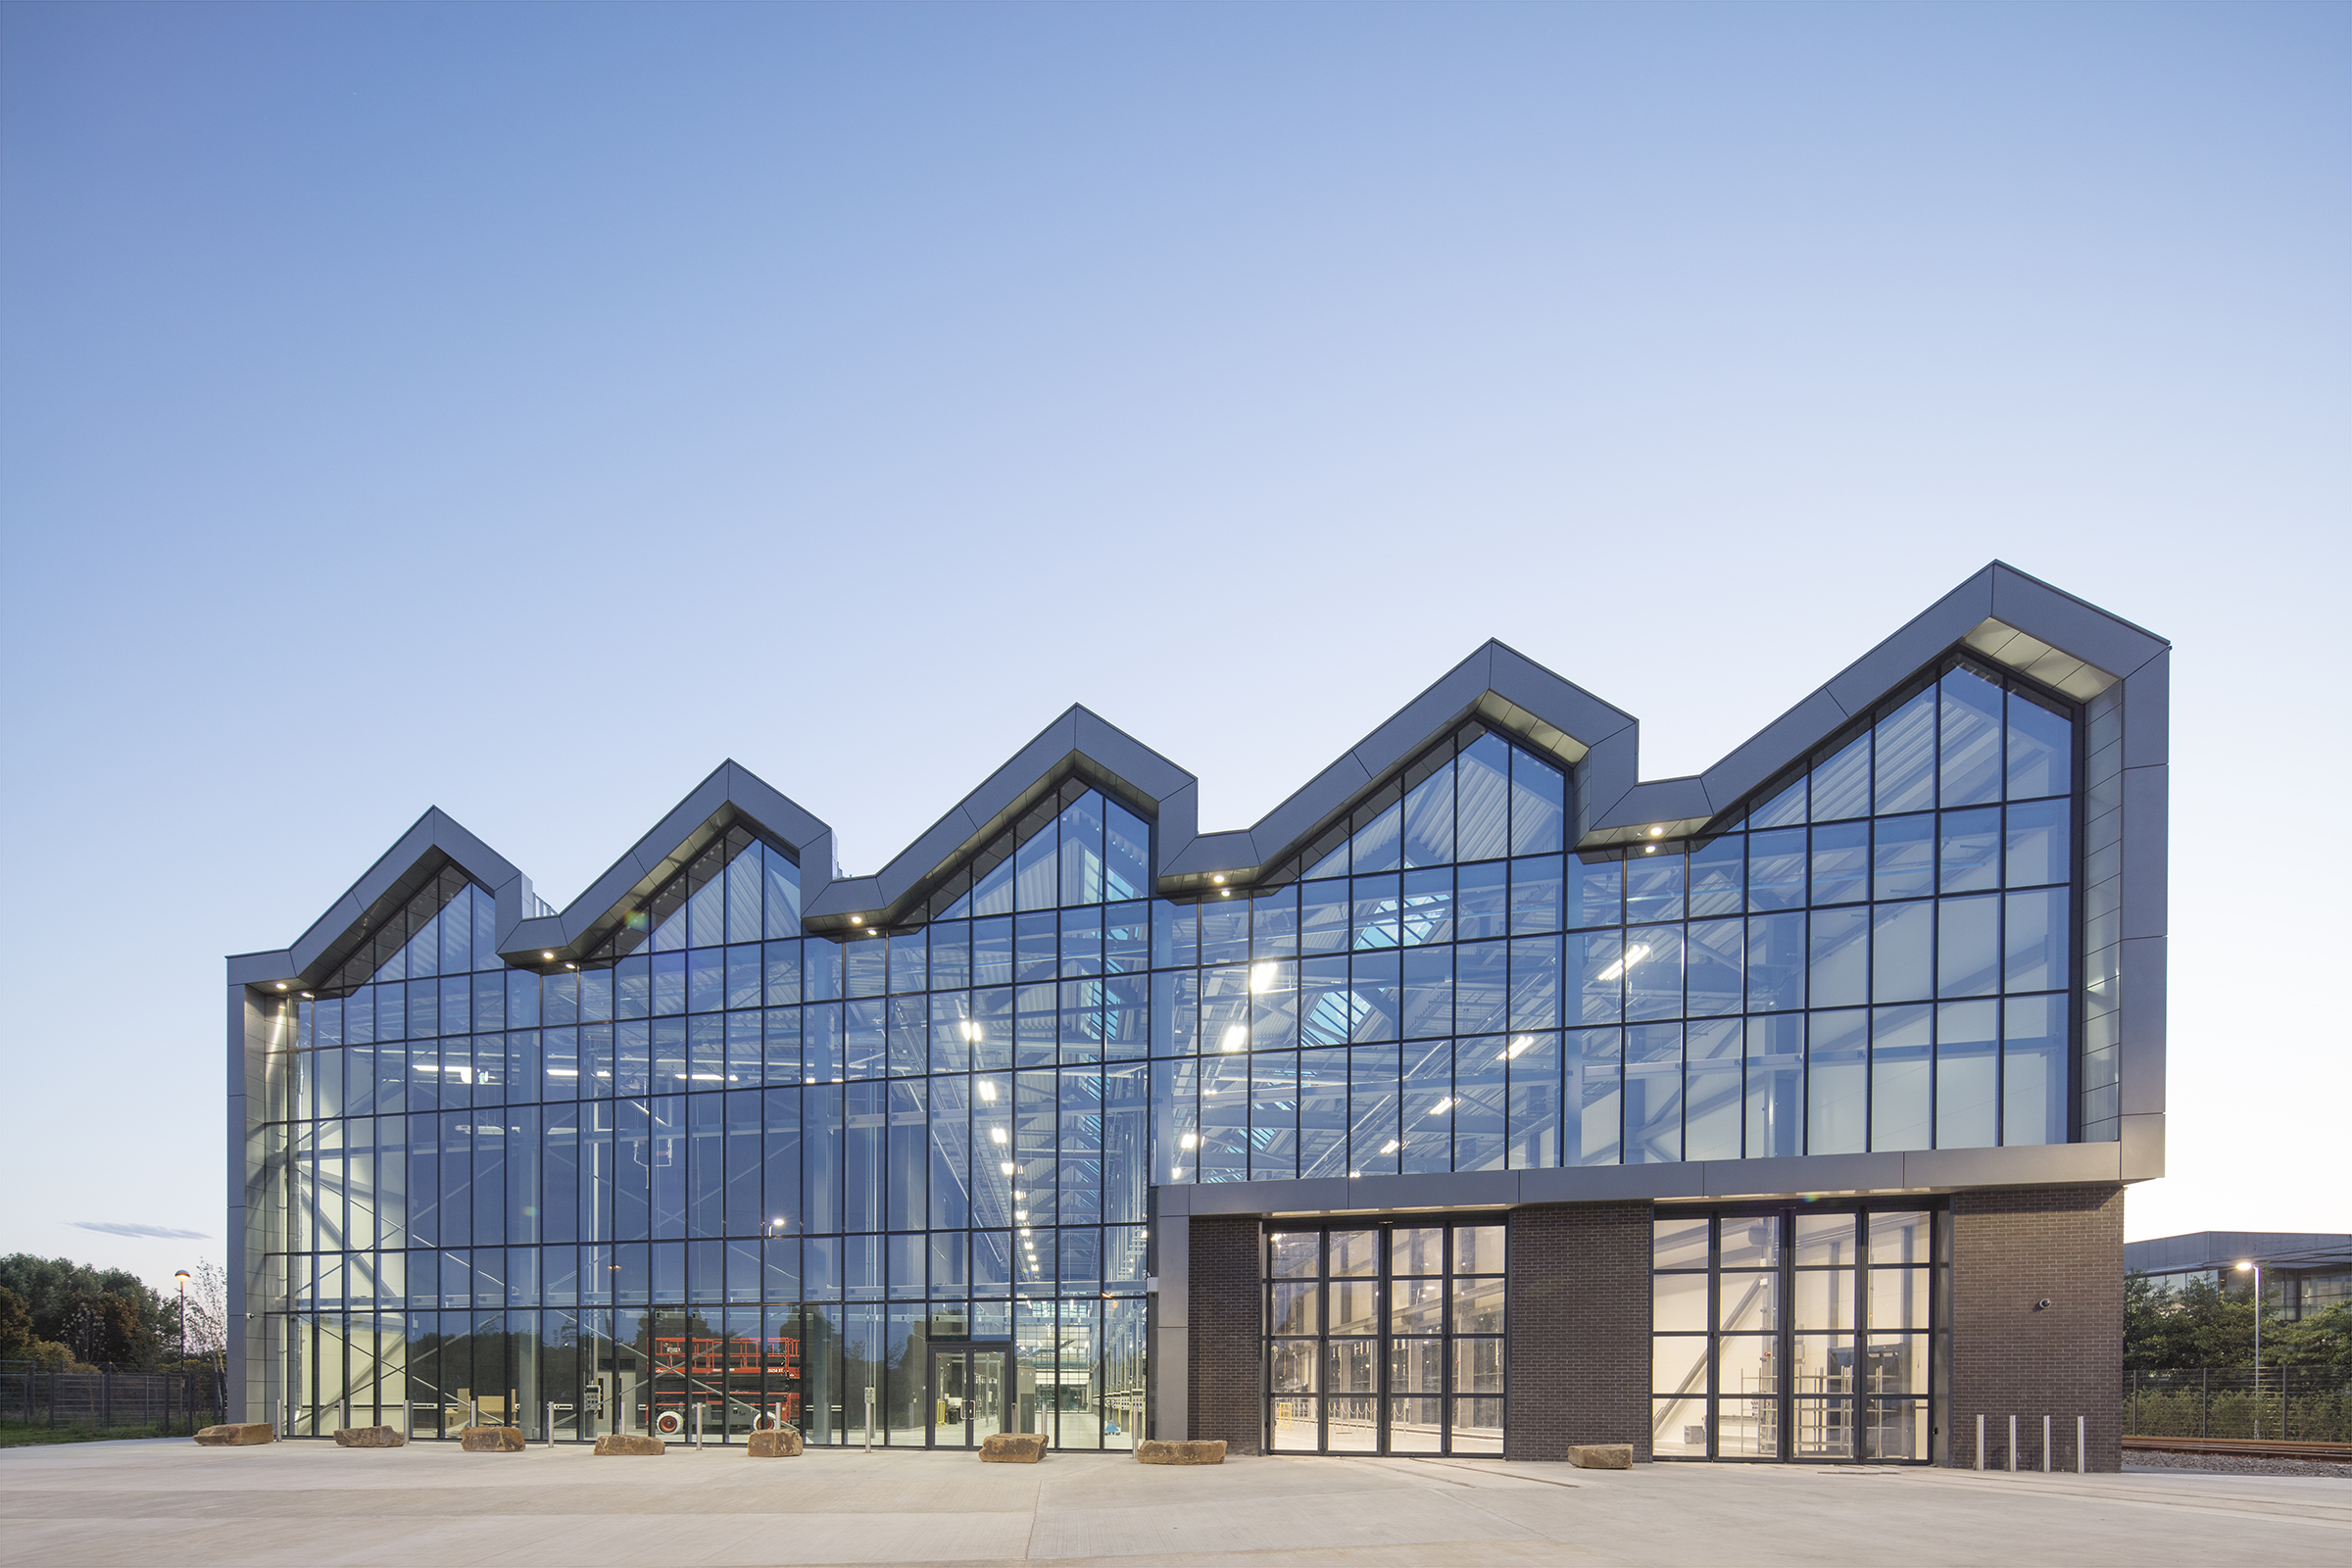 National College for High Speed Rail – Doncaster – 2 sets of Swift-SEW fully glazed bi-folding doors